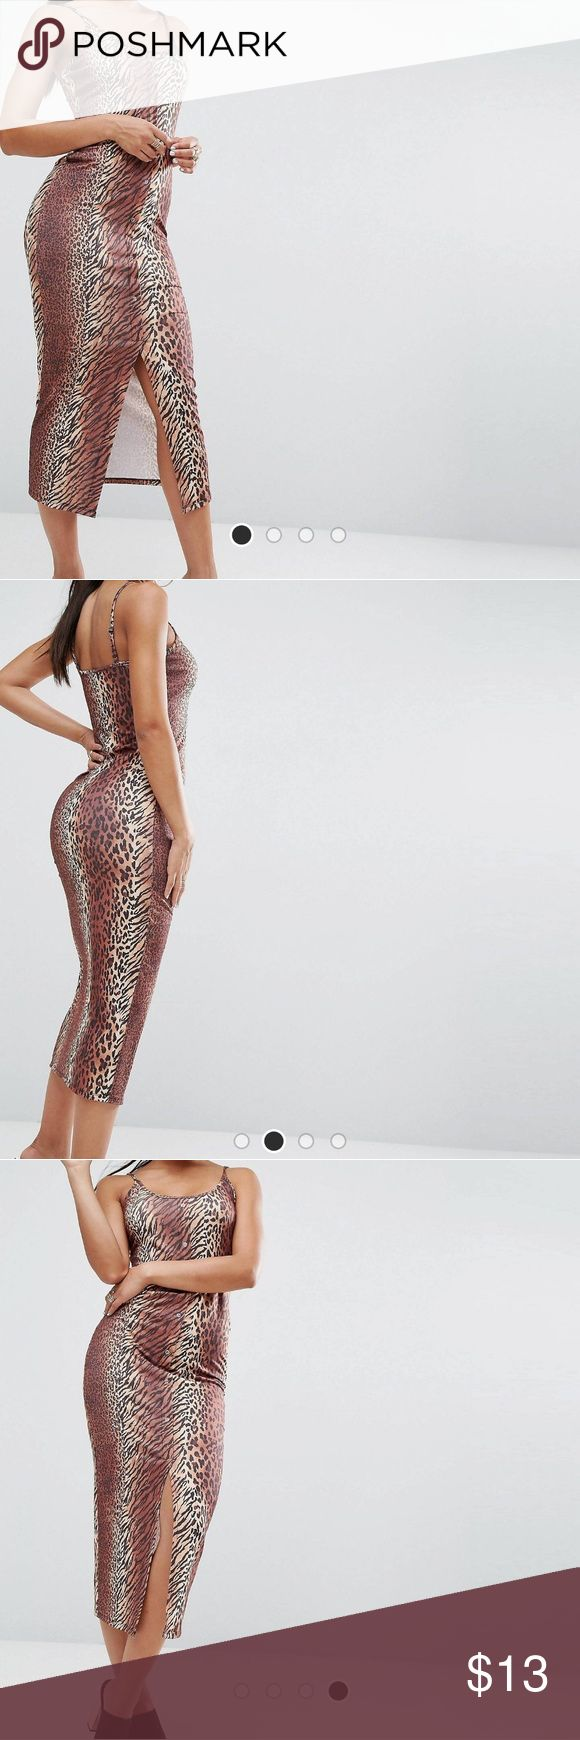 ASOS Animal Print Bodycon Dress w/ Popper Detail Printed knit fabric. Scoop neck. Adjustable straps. Front popper placket. Close-cut bodycon fit. 96% Polyester, 4% Elastane. Between midi and maxi length. ASOS Dresses